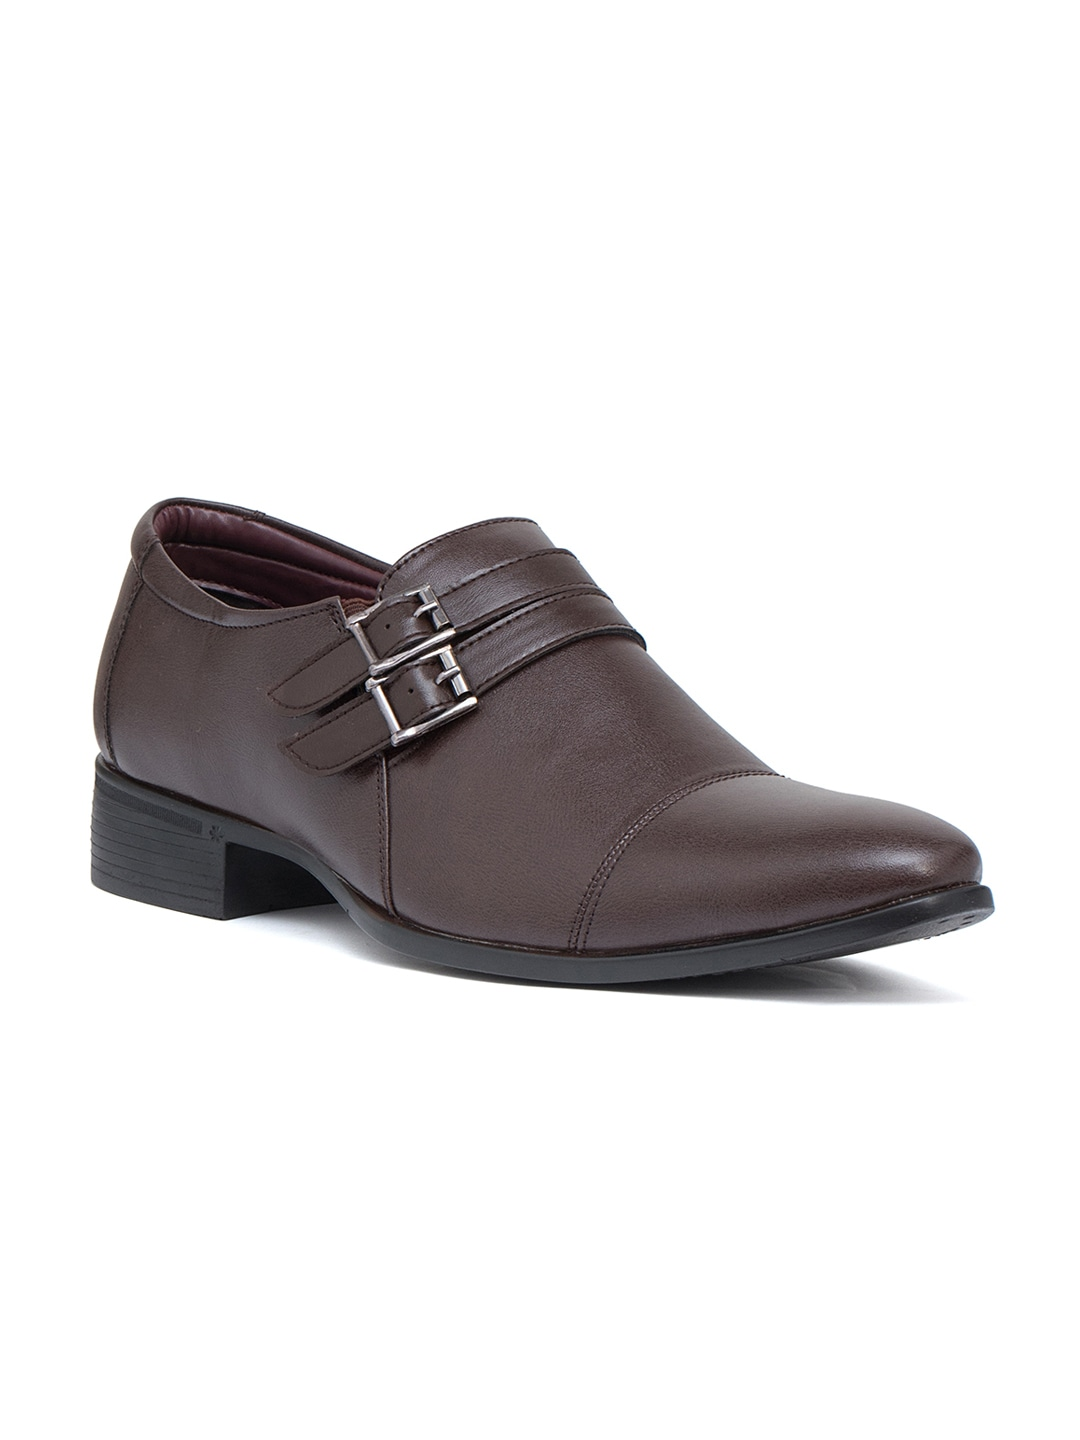 5533a5bb34d6 Bata Power Shoes - Buy Power Shoes Online in India